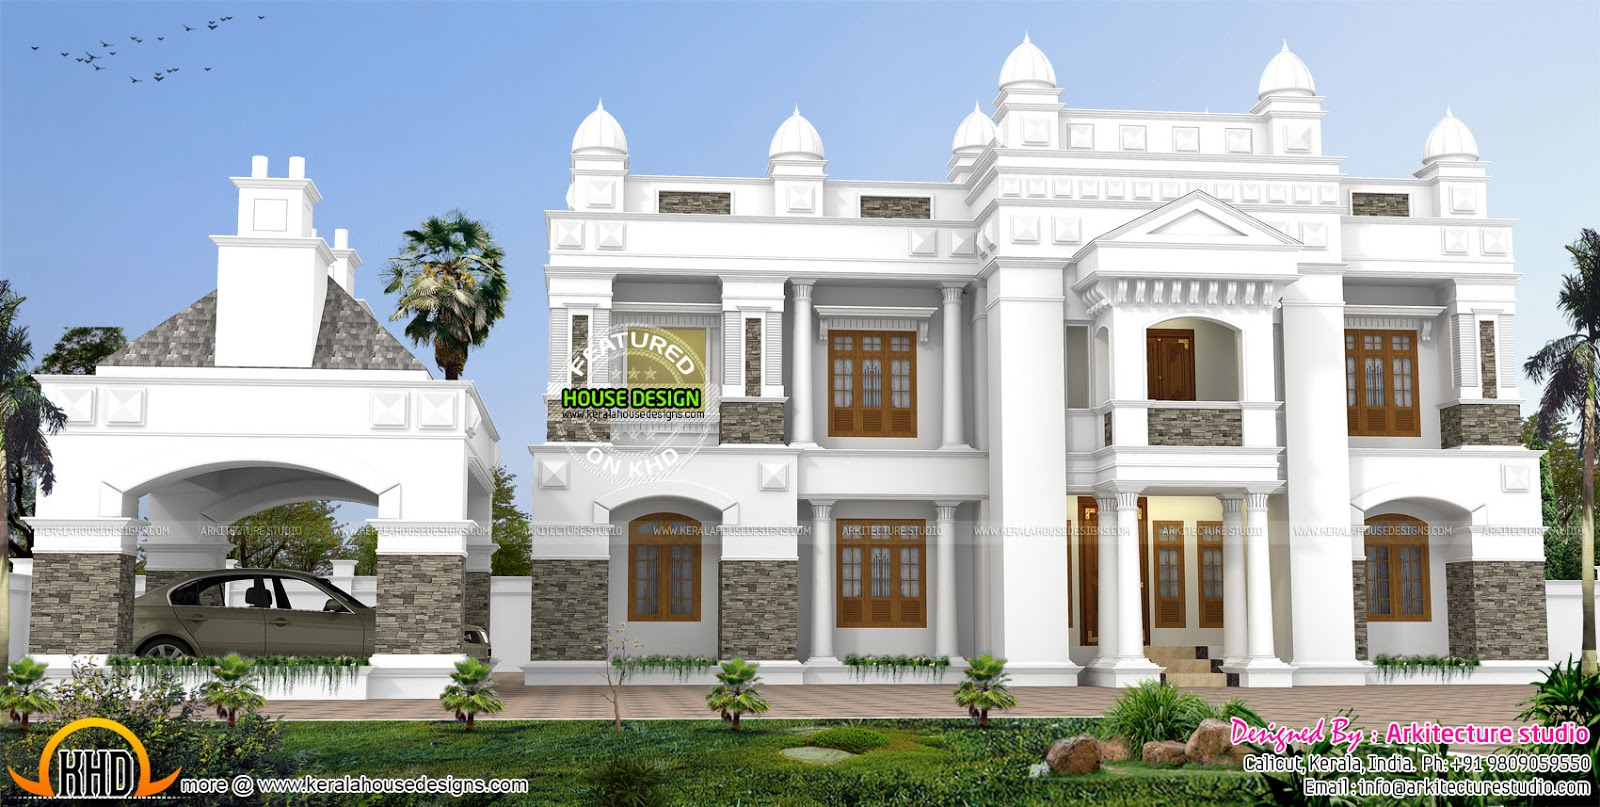 Old house remodeling plan - Kerala home design and floor plans